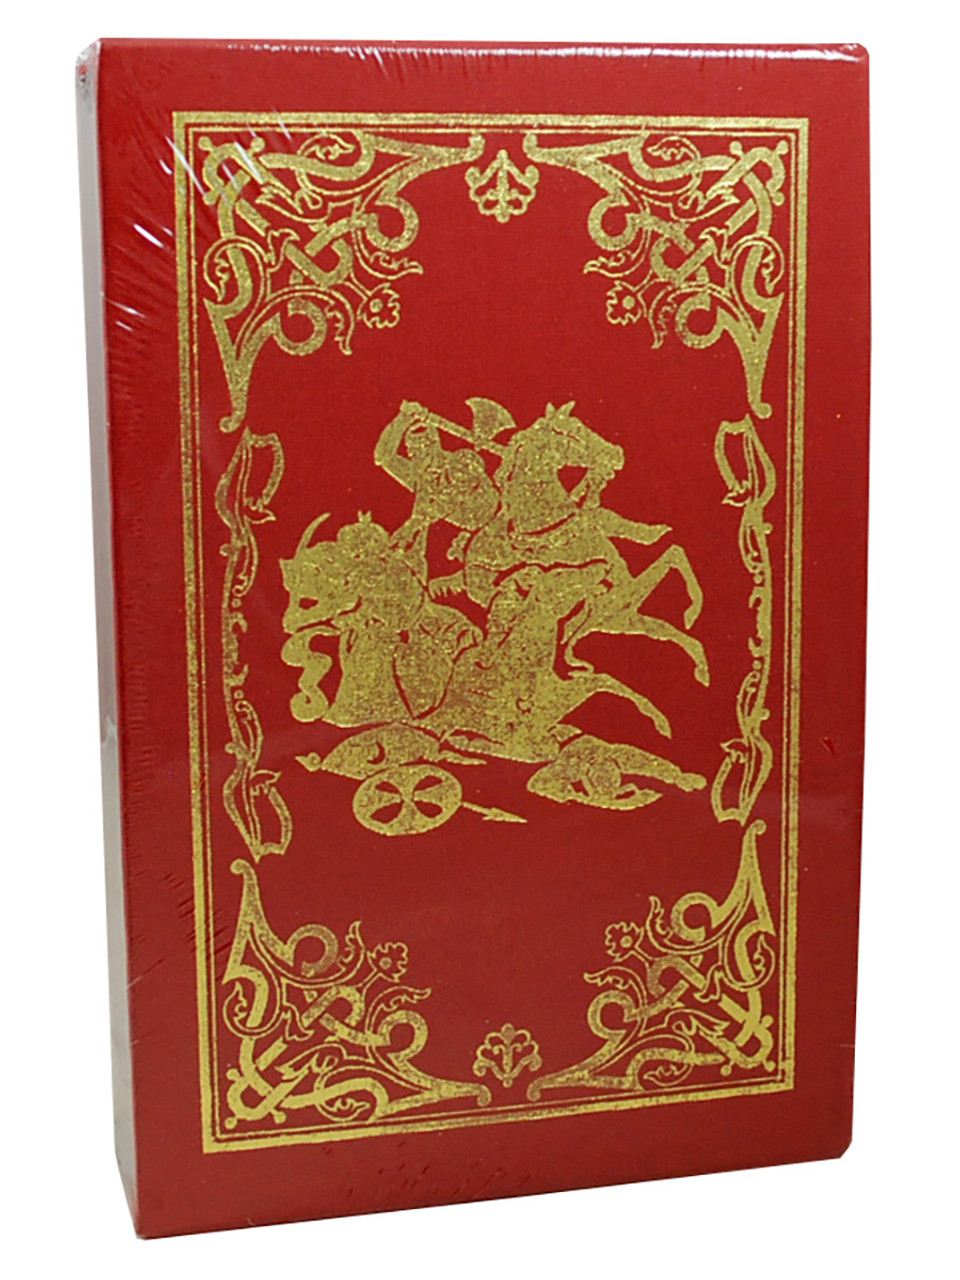 """Major Proctor """"History Of The Crusades"""" Limited Edition, Leather Bound Collector's Edition of only 600, Slipcased [Sealed]"""